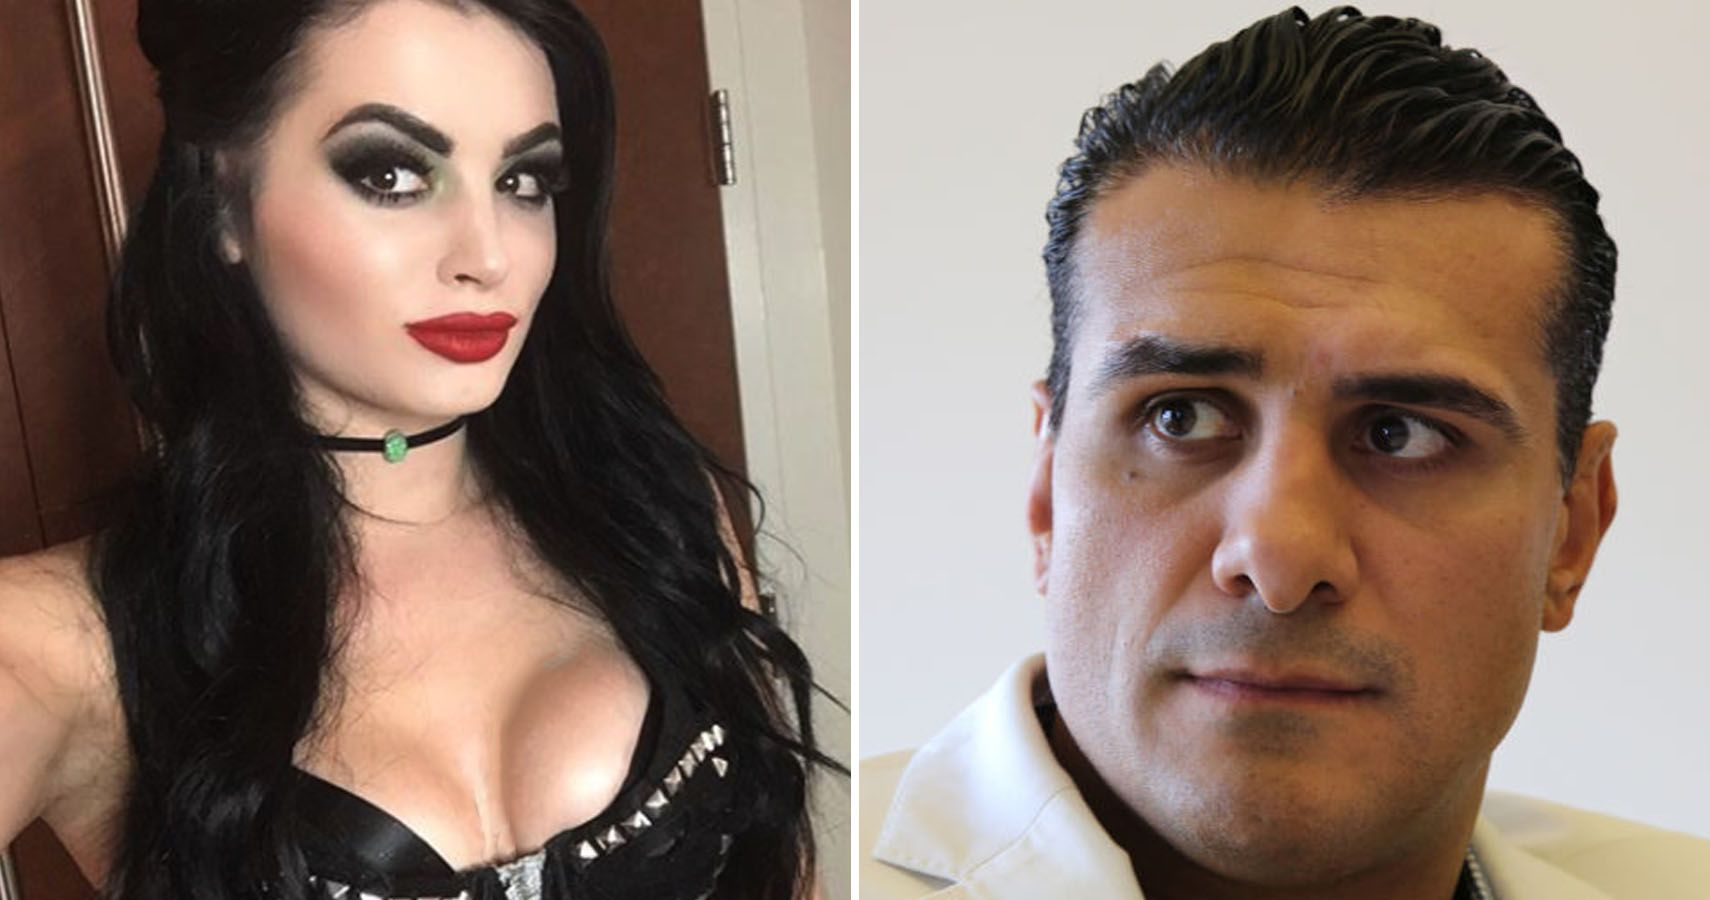 Paige and Del Rio are a couple outside the ring who have been dating.